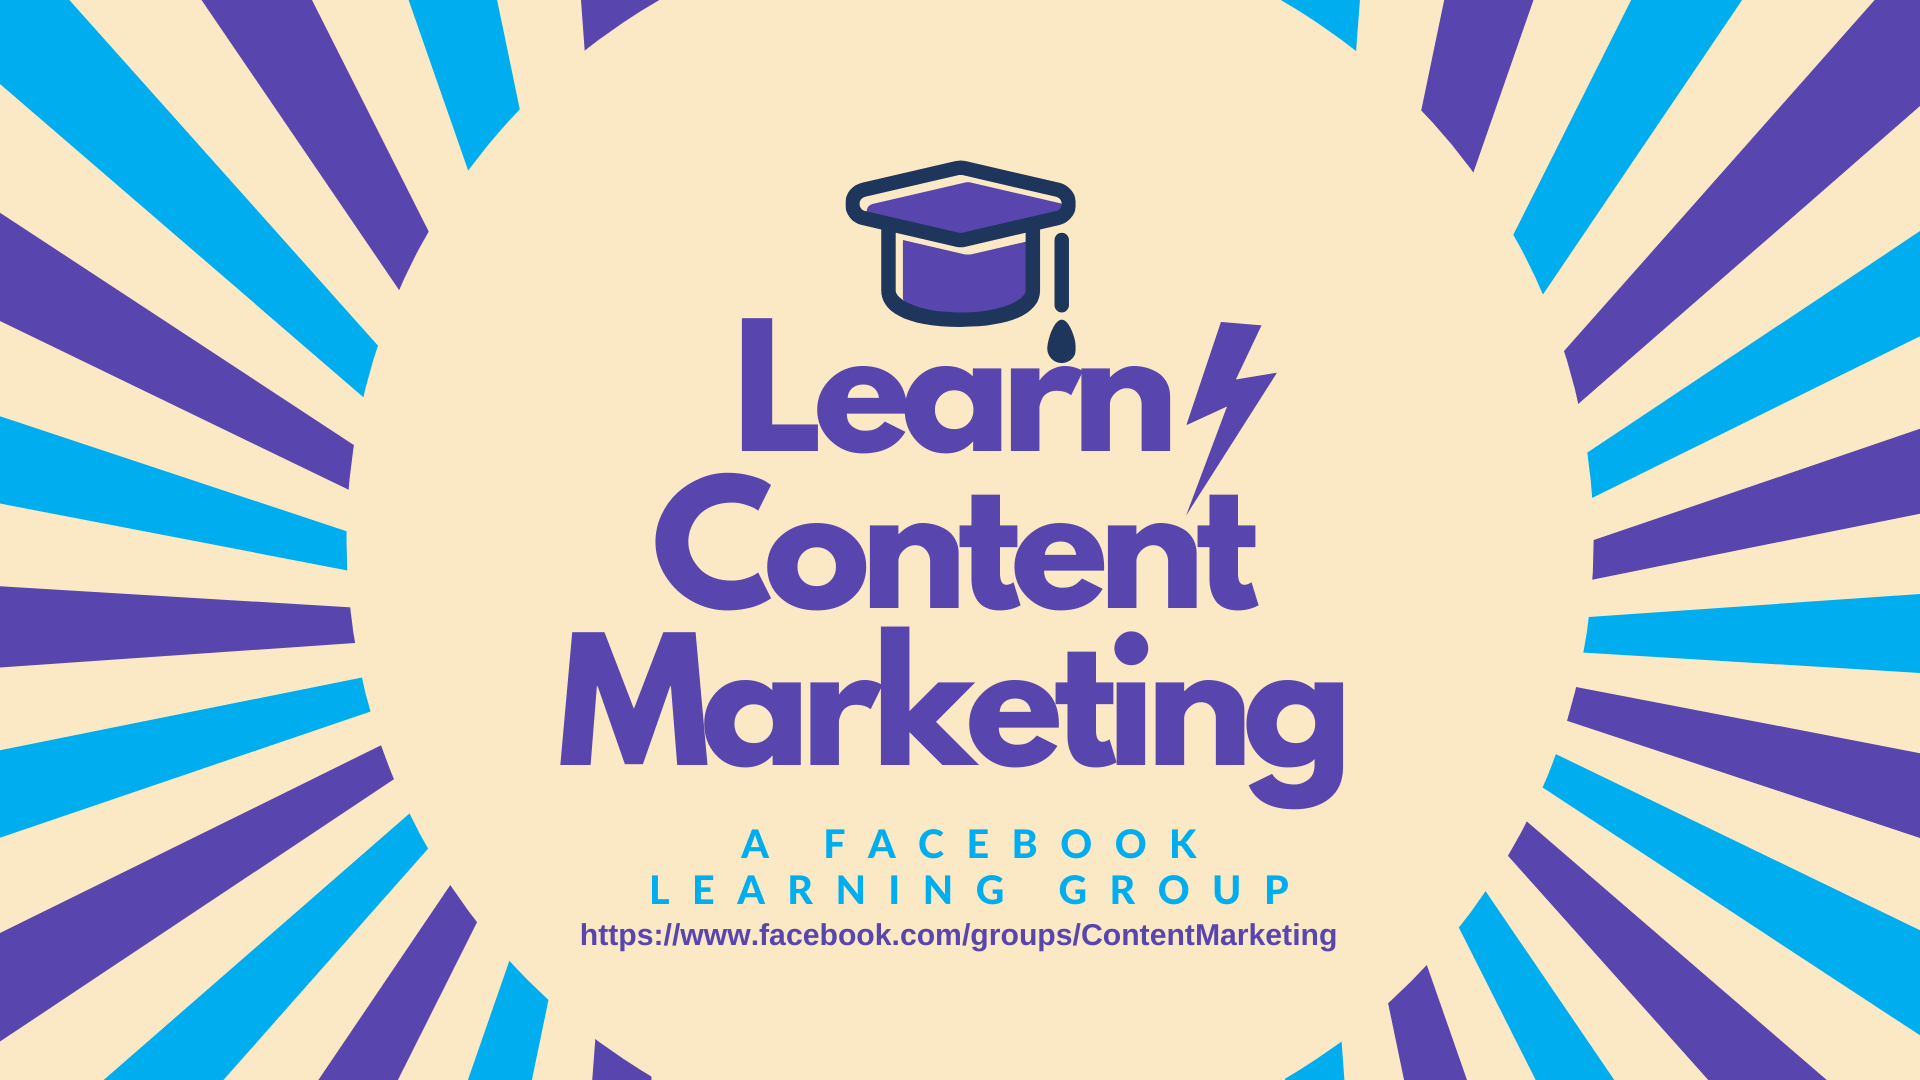 Facebook-Group-ContentMarketing-by-MUSKLY